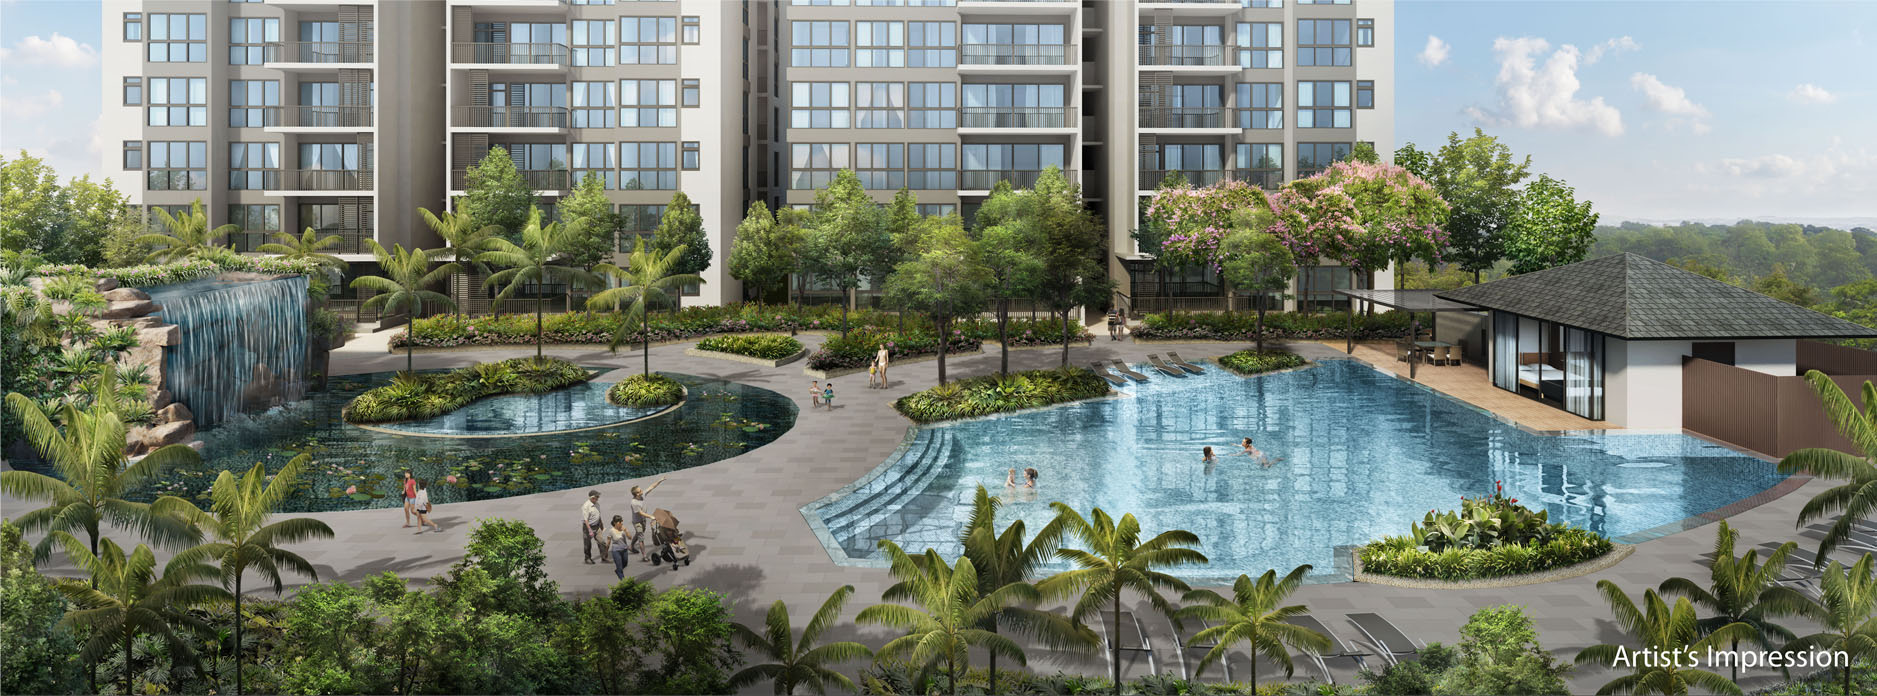 Northpark-Residences-spring-cove